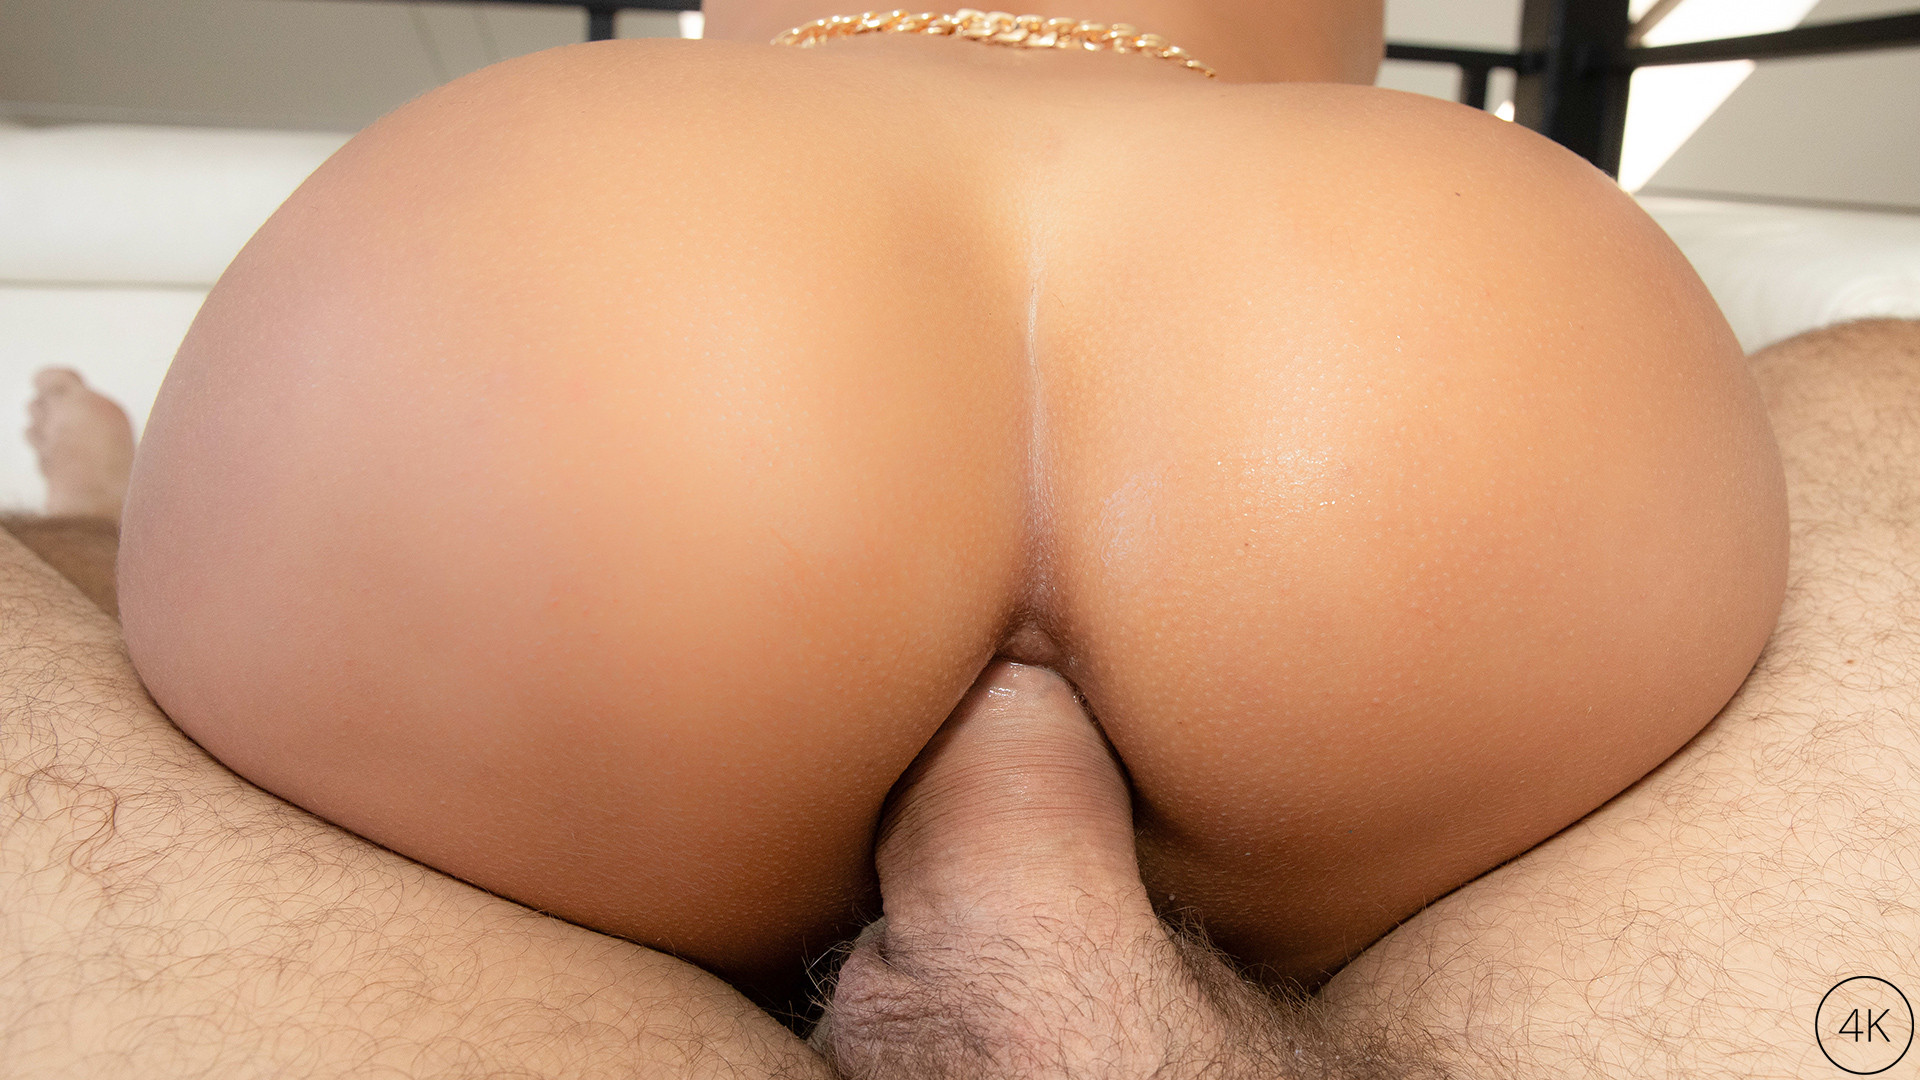 Download JulesJordan.com - Bridgette B Gets Her ASS Pounded By The Milfomaniac